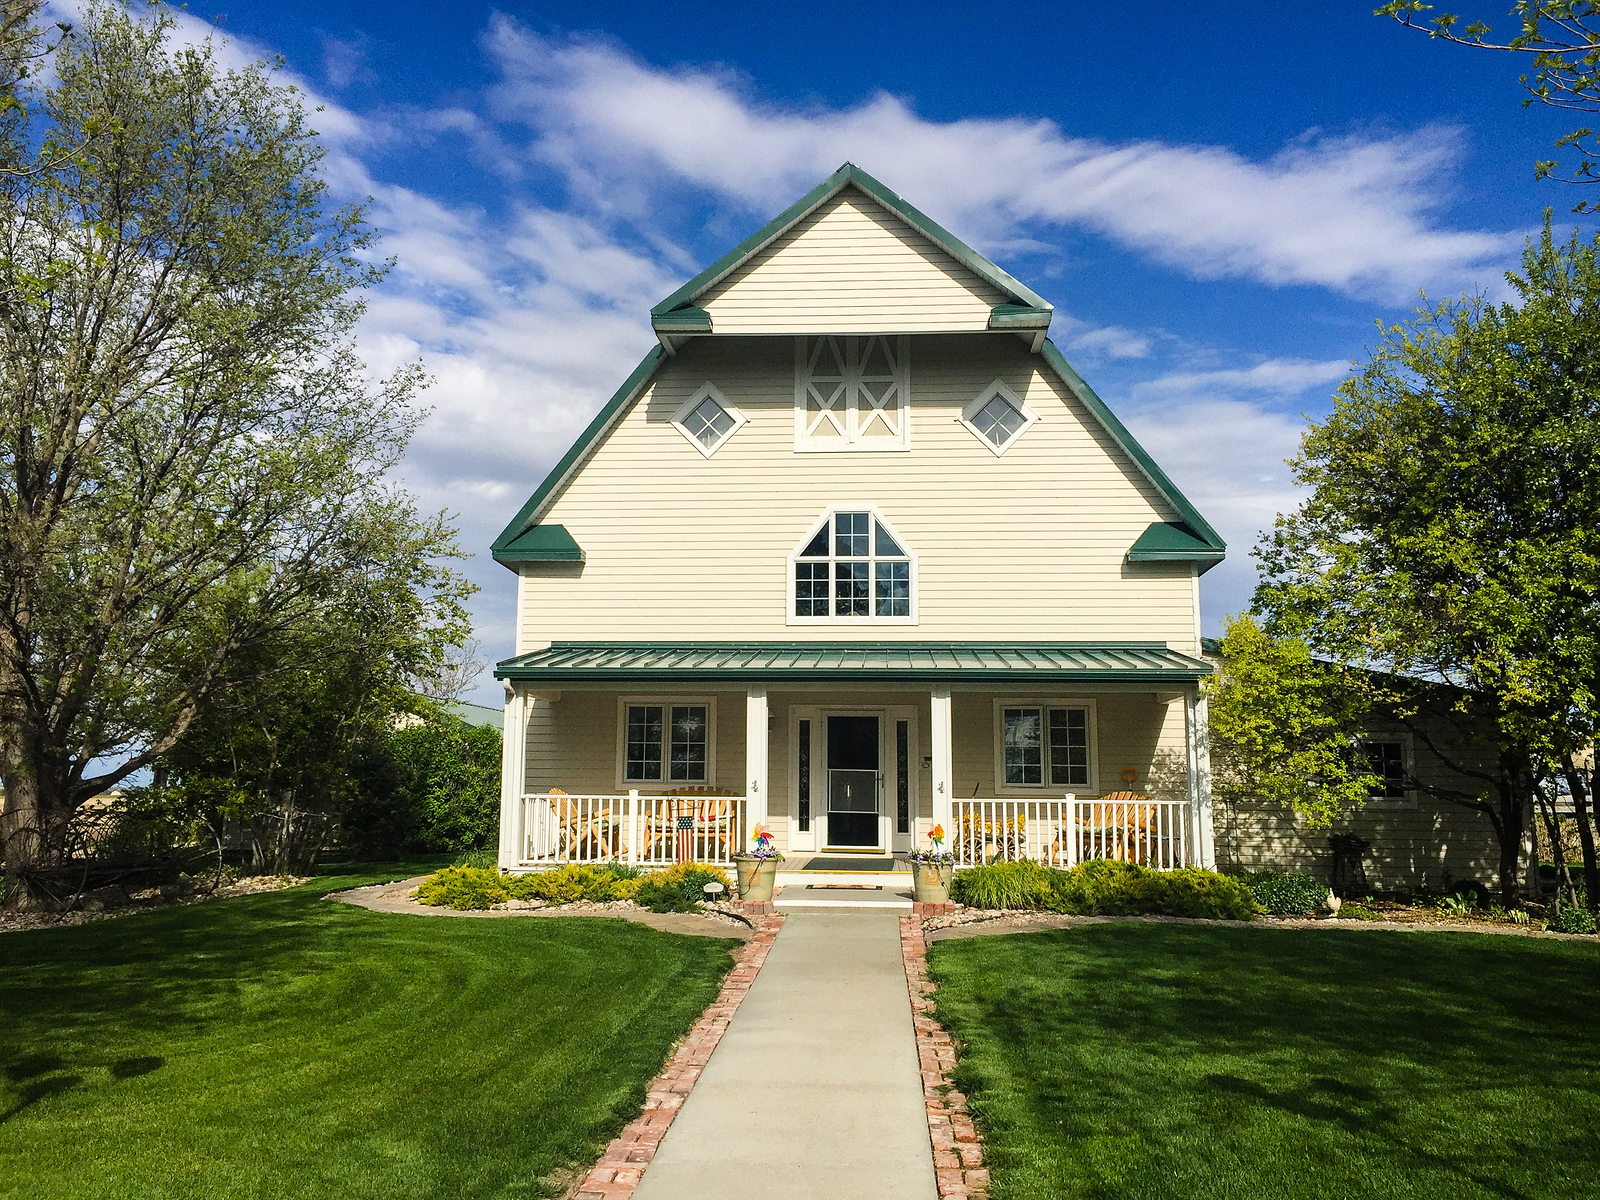 Cream colored barn accented by dark green roof and trim, green lawn and white clouds in a blue sky at Barn Anew.